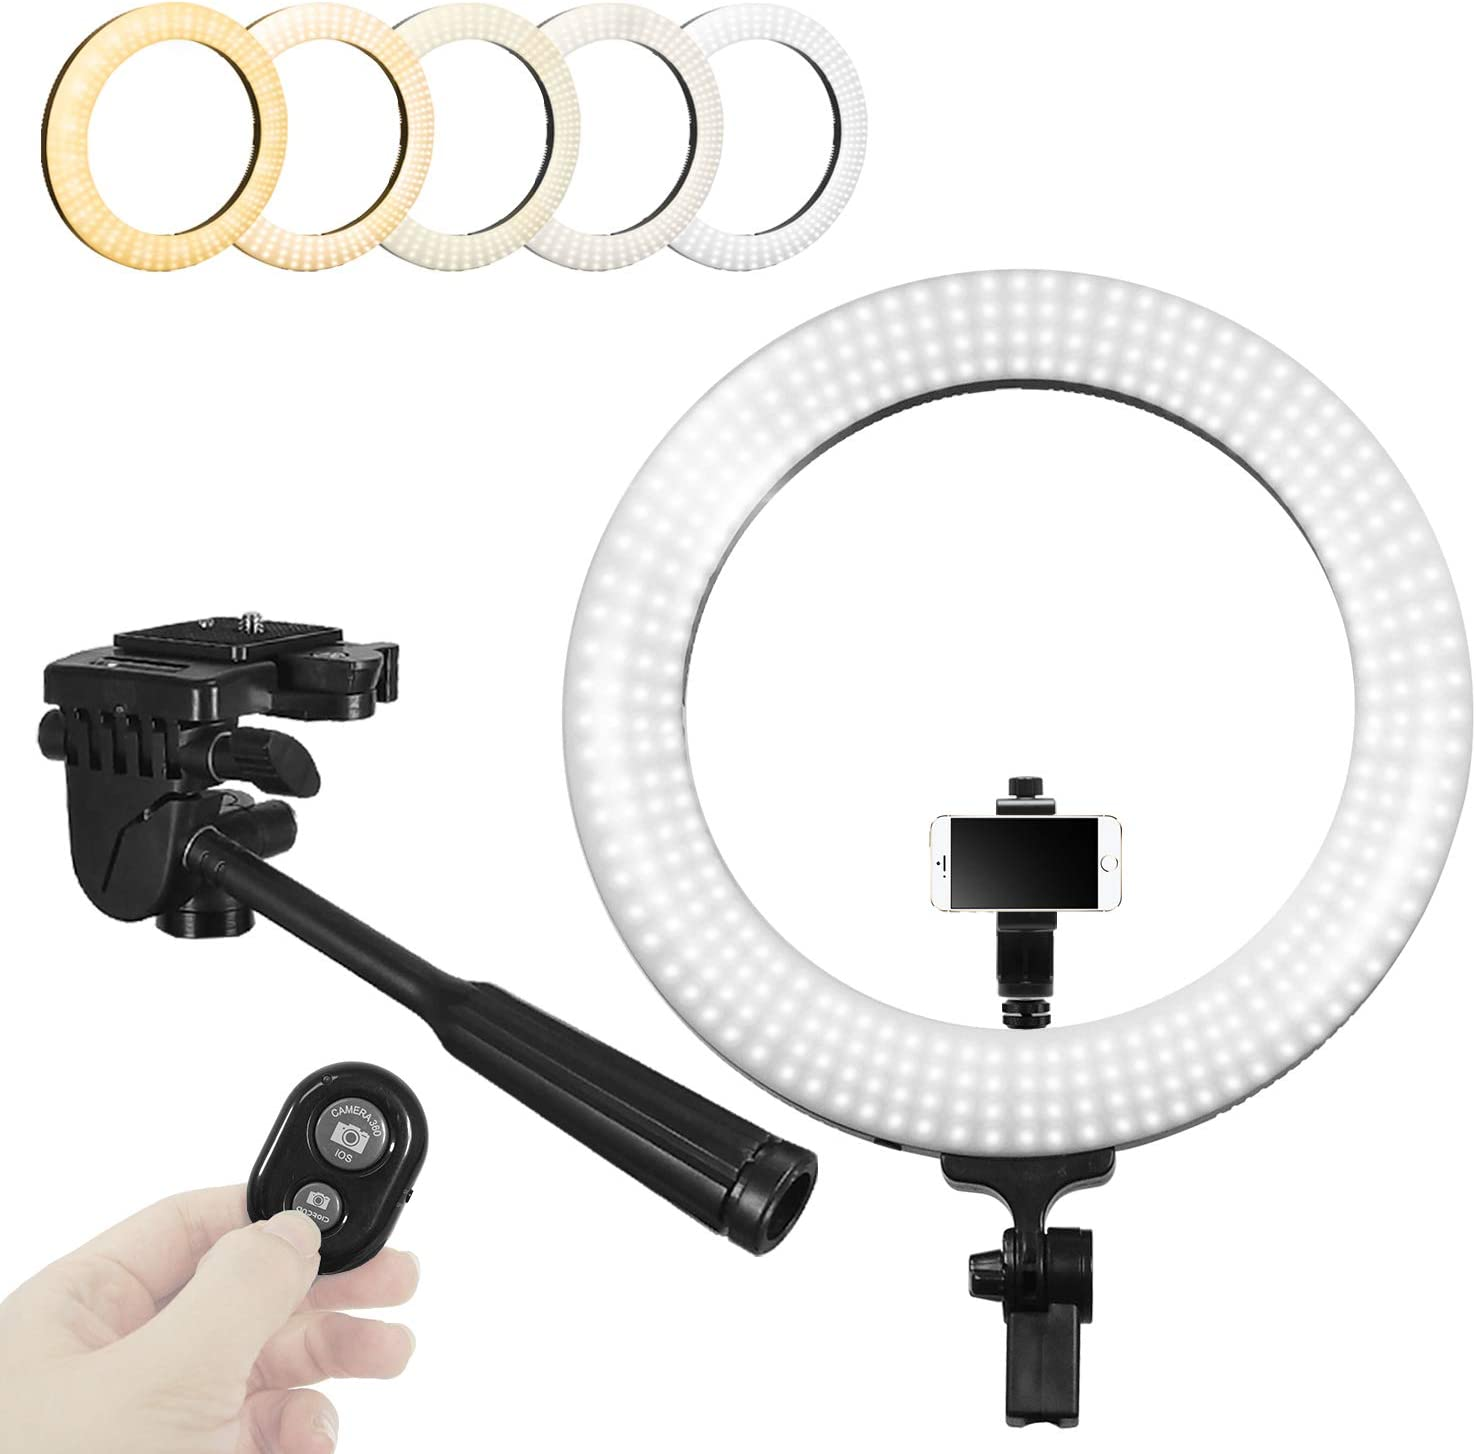 AGG2850 Limo Studio 18 inch Multi-Tone Ring Light with Cellphone Tripod Adapter Wireless Bluetooth Camera Shutter LED Dual Color Dimmable Continuous Lighting for Beauty Facial Shoot